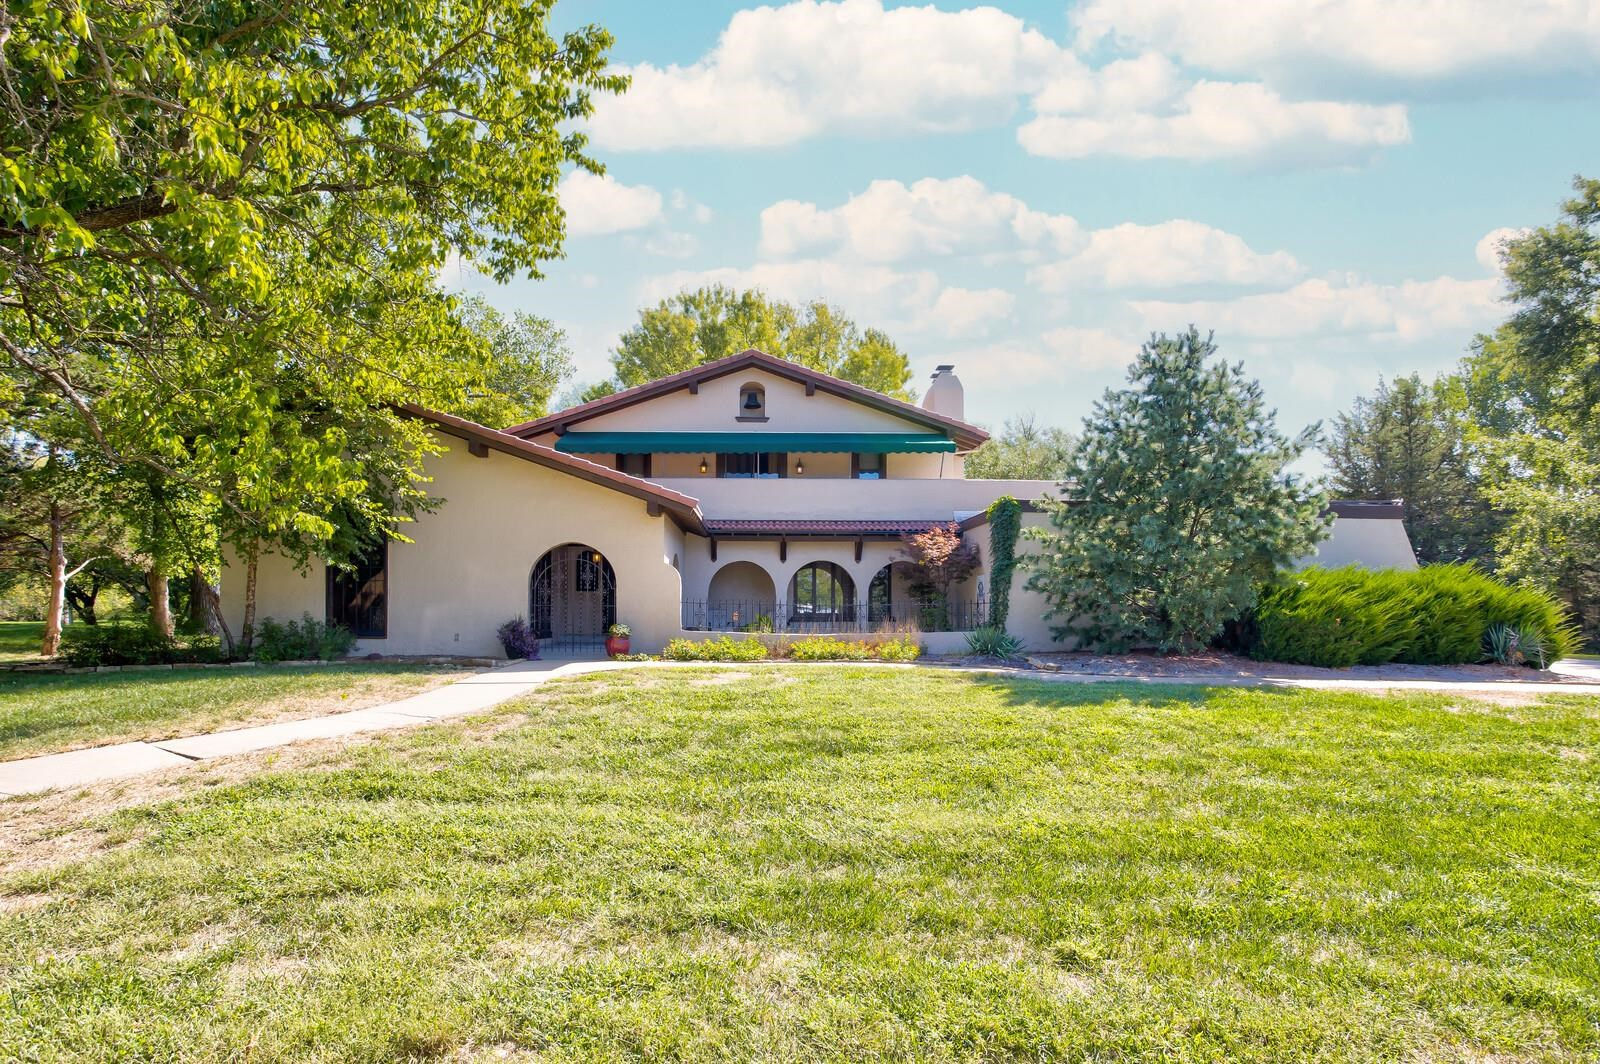 Welcome home to 2 N Stagecoach! Located in beautiful Shadybrook Farms, this home has character and u